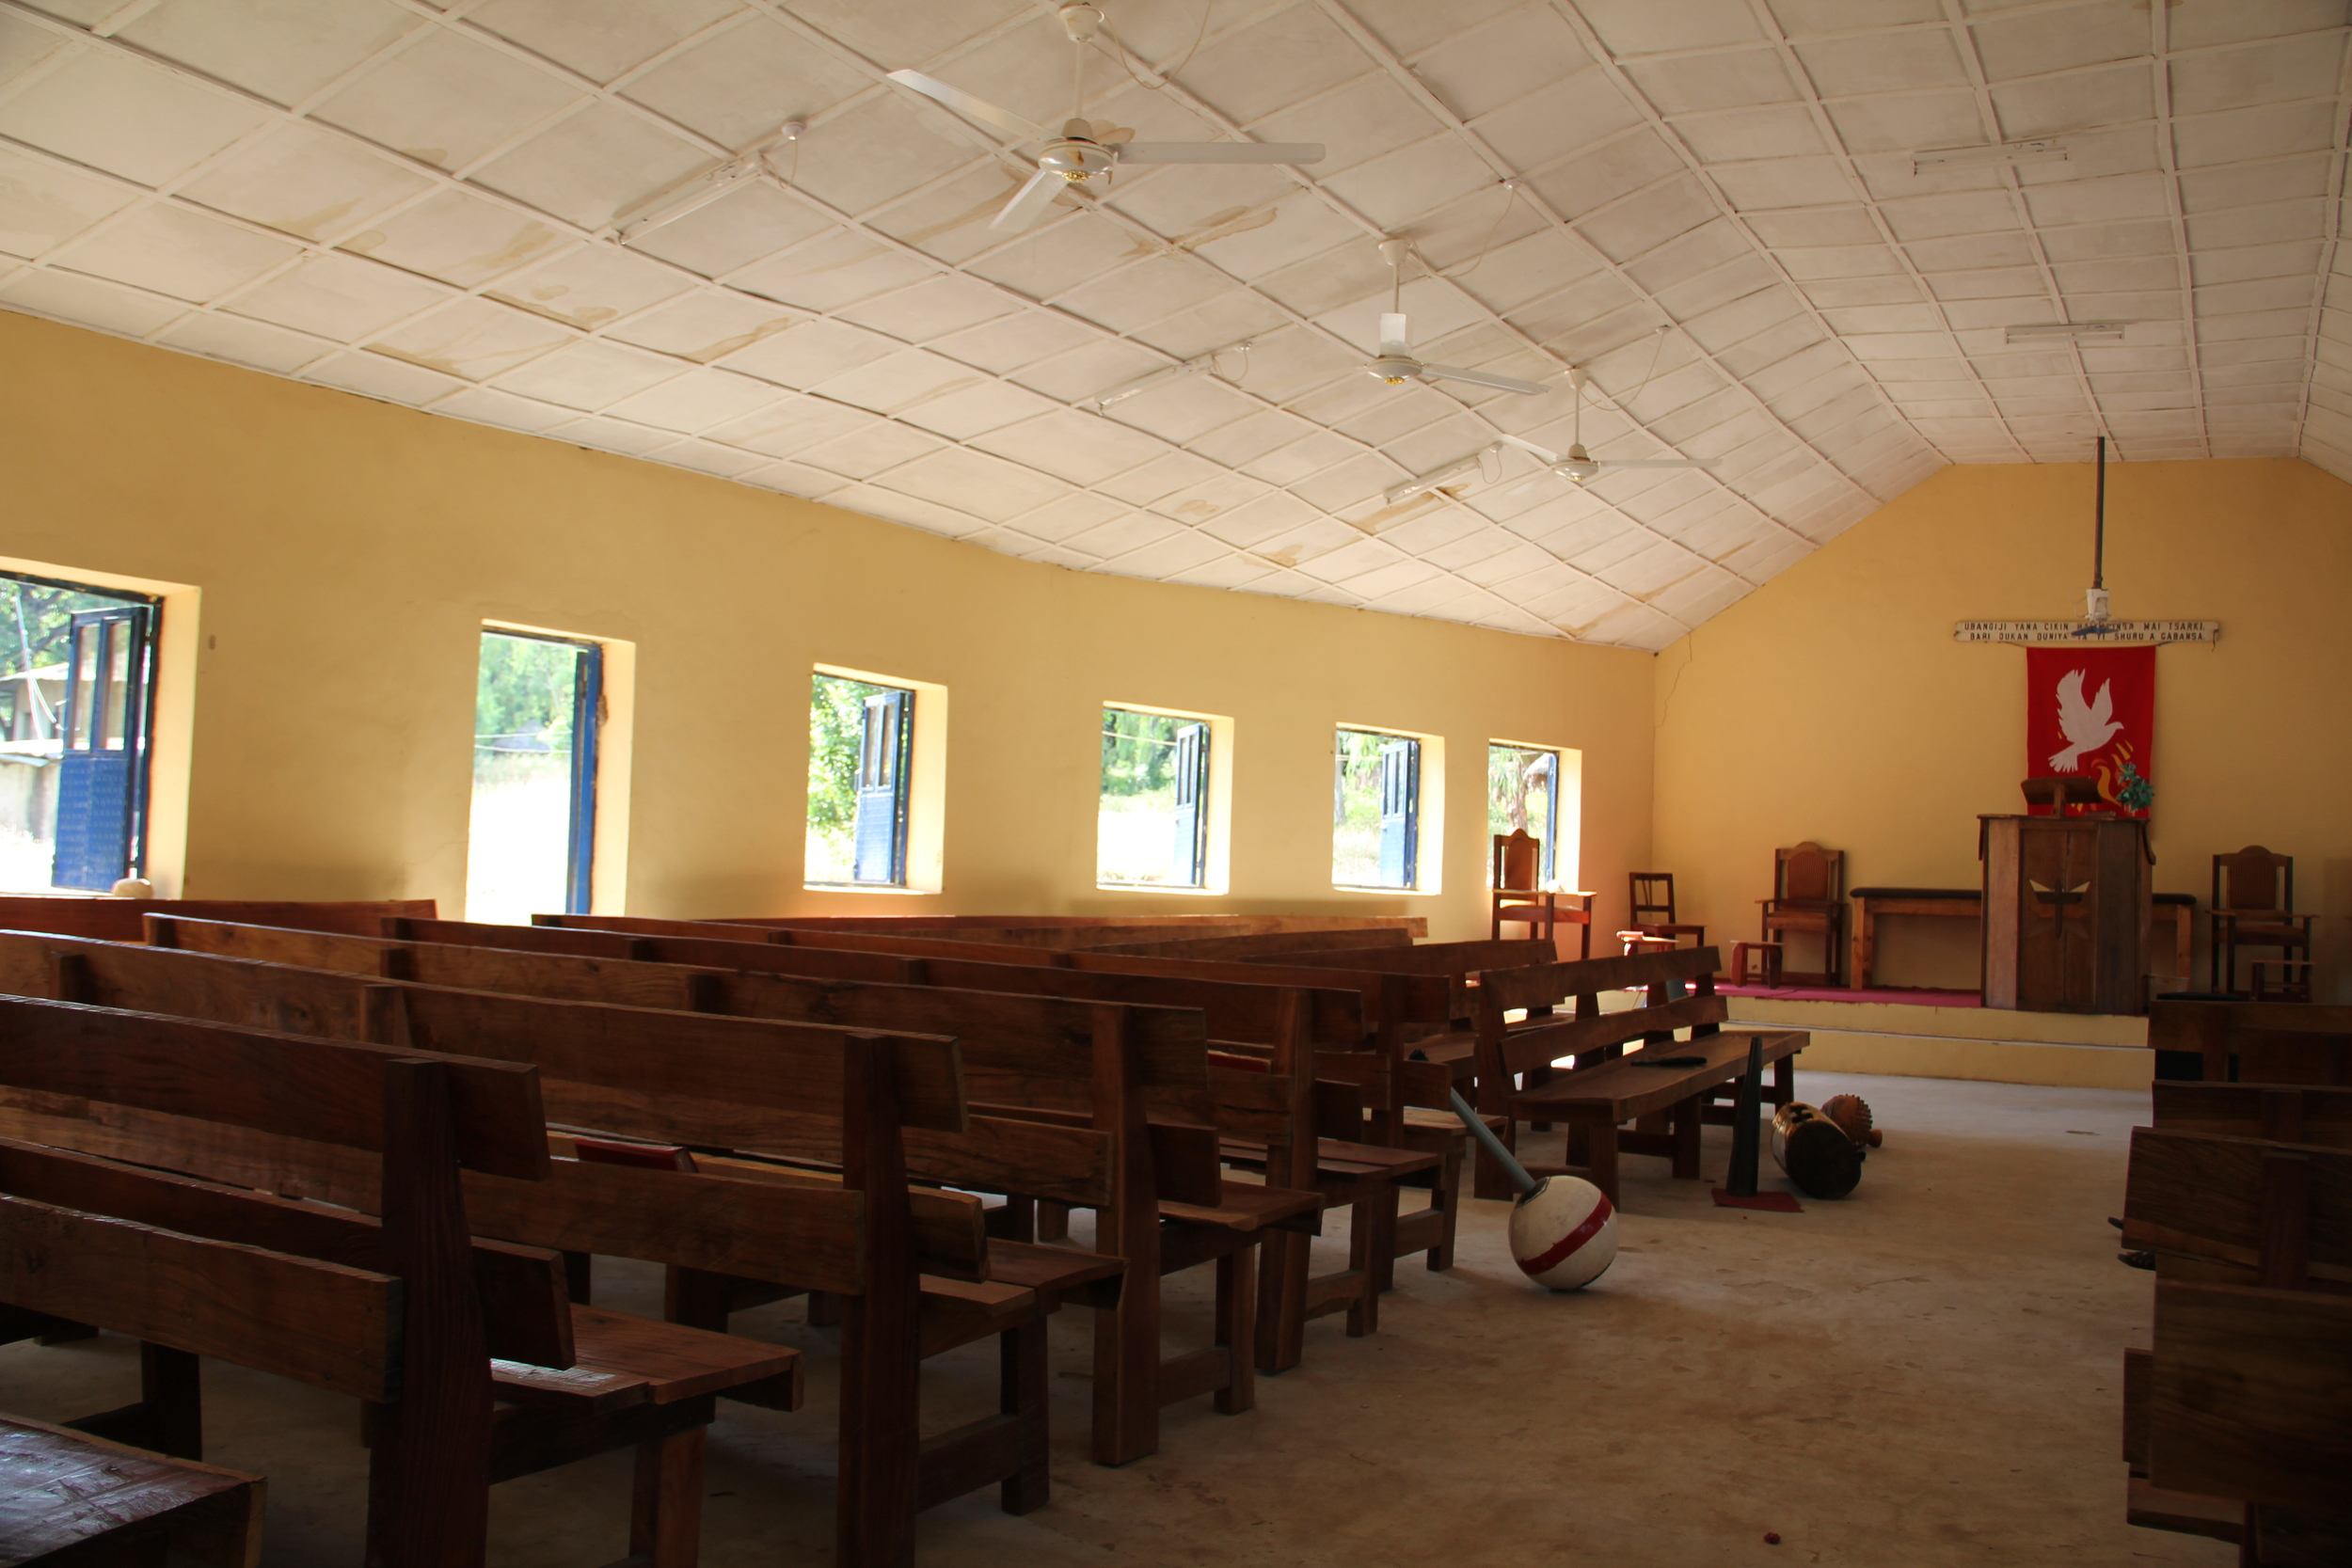 Slightly bowed walls and lots of open windows are designed to catch any available breeze to make worship more comfortable.